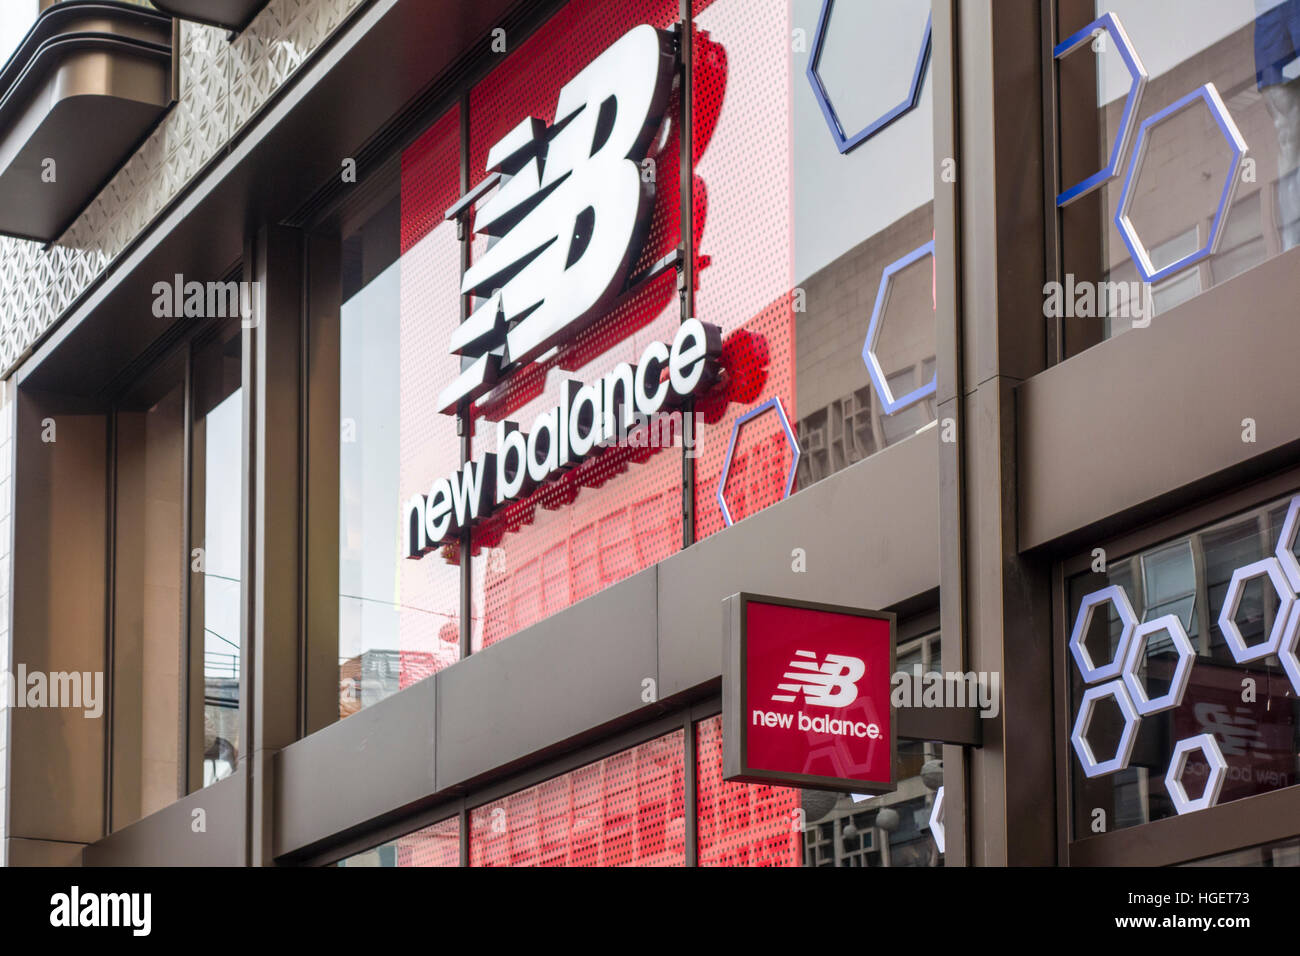 new balance store in central london